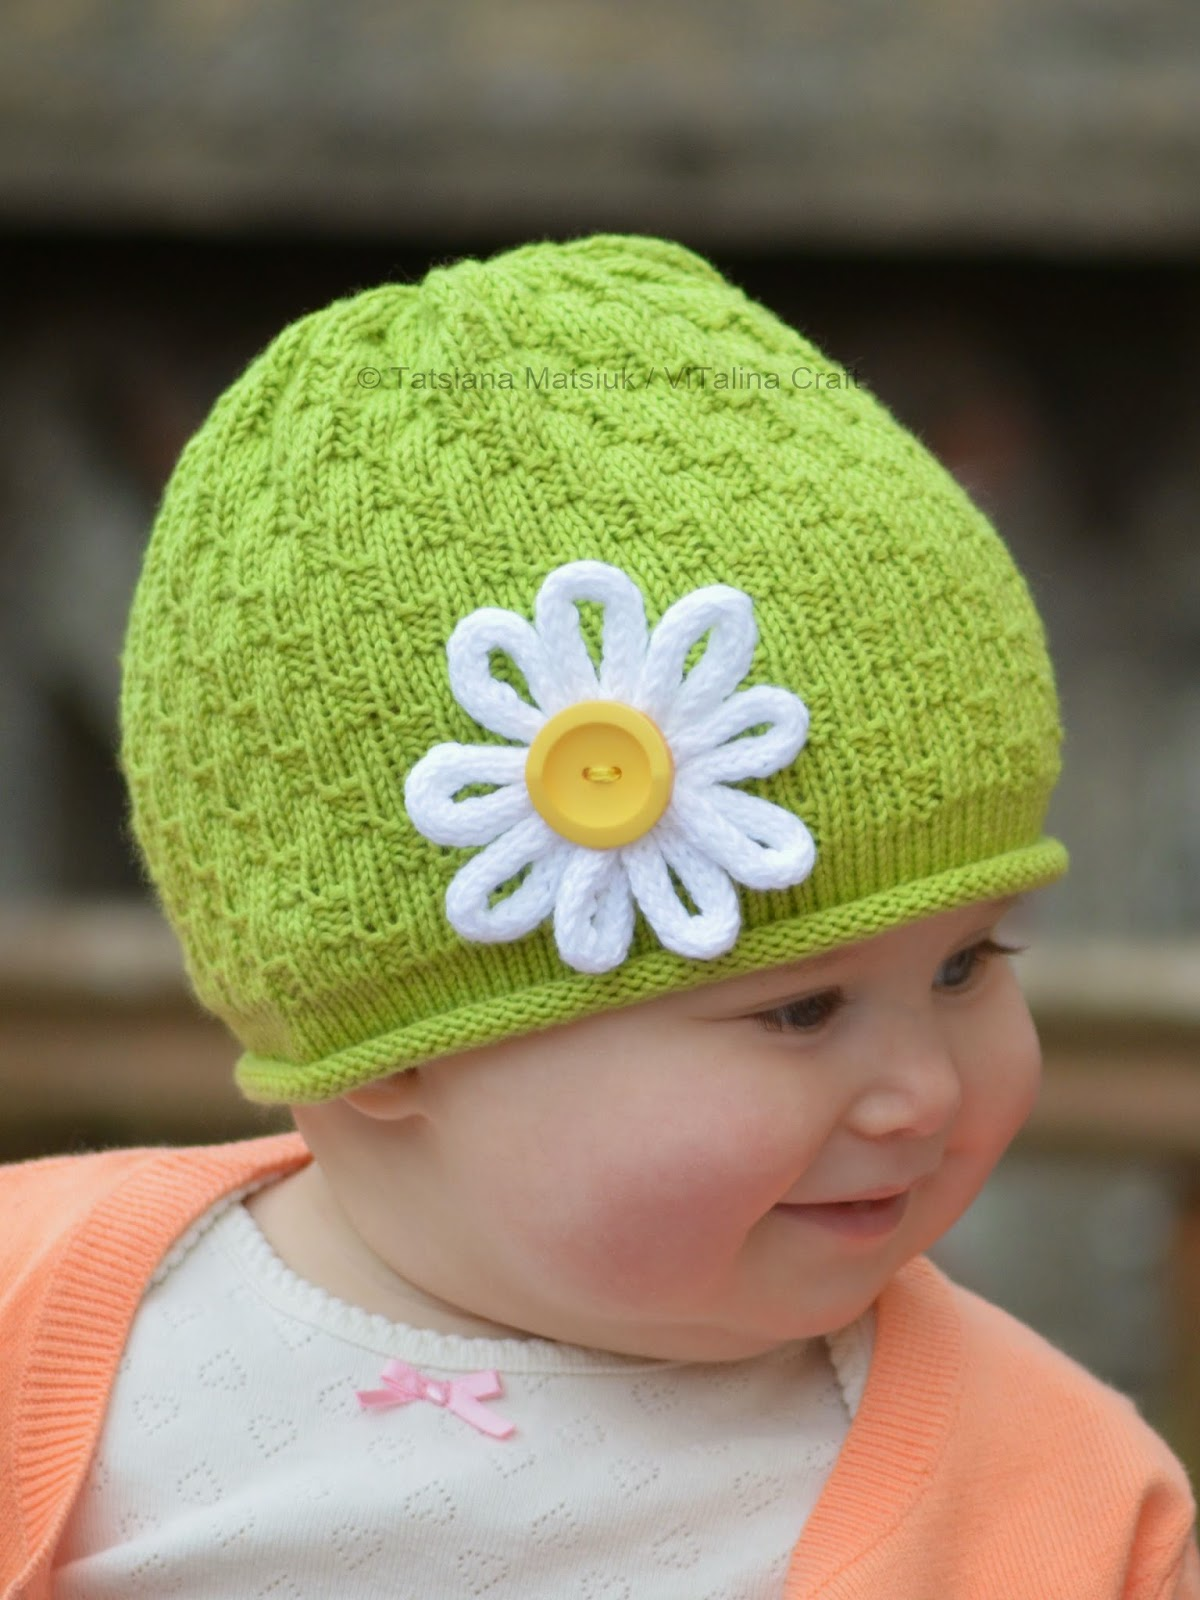 My daisy flower hat knitting pattern vitalina craft the hat is knitted with light green egyptian cotton and it is a perfect garment for this time of year like my previous hats this one is also knitted in the izmirmasajfo